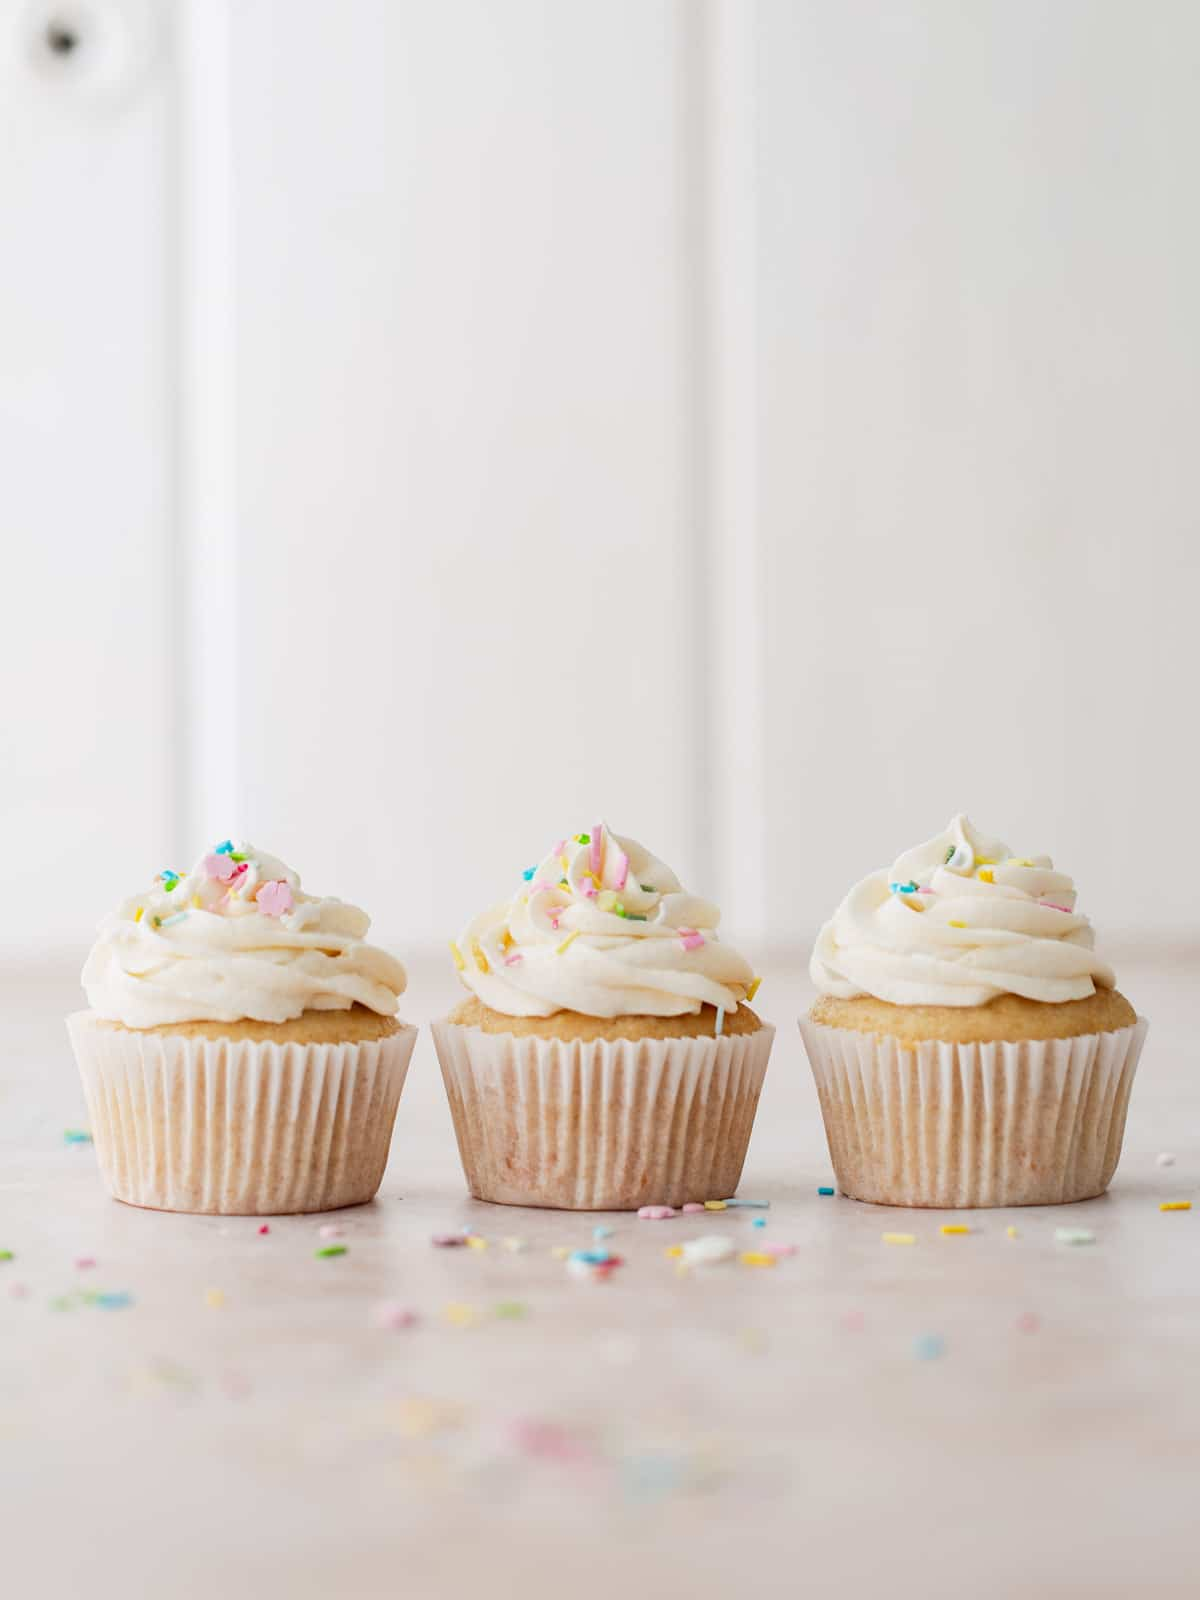 Three frosted vanilla cupcakes with sprinkles.